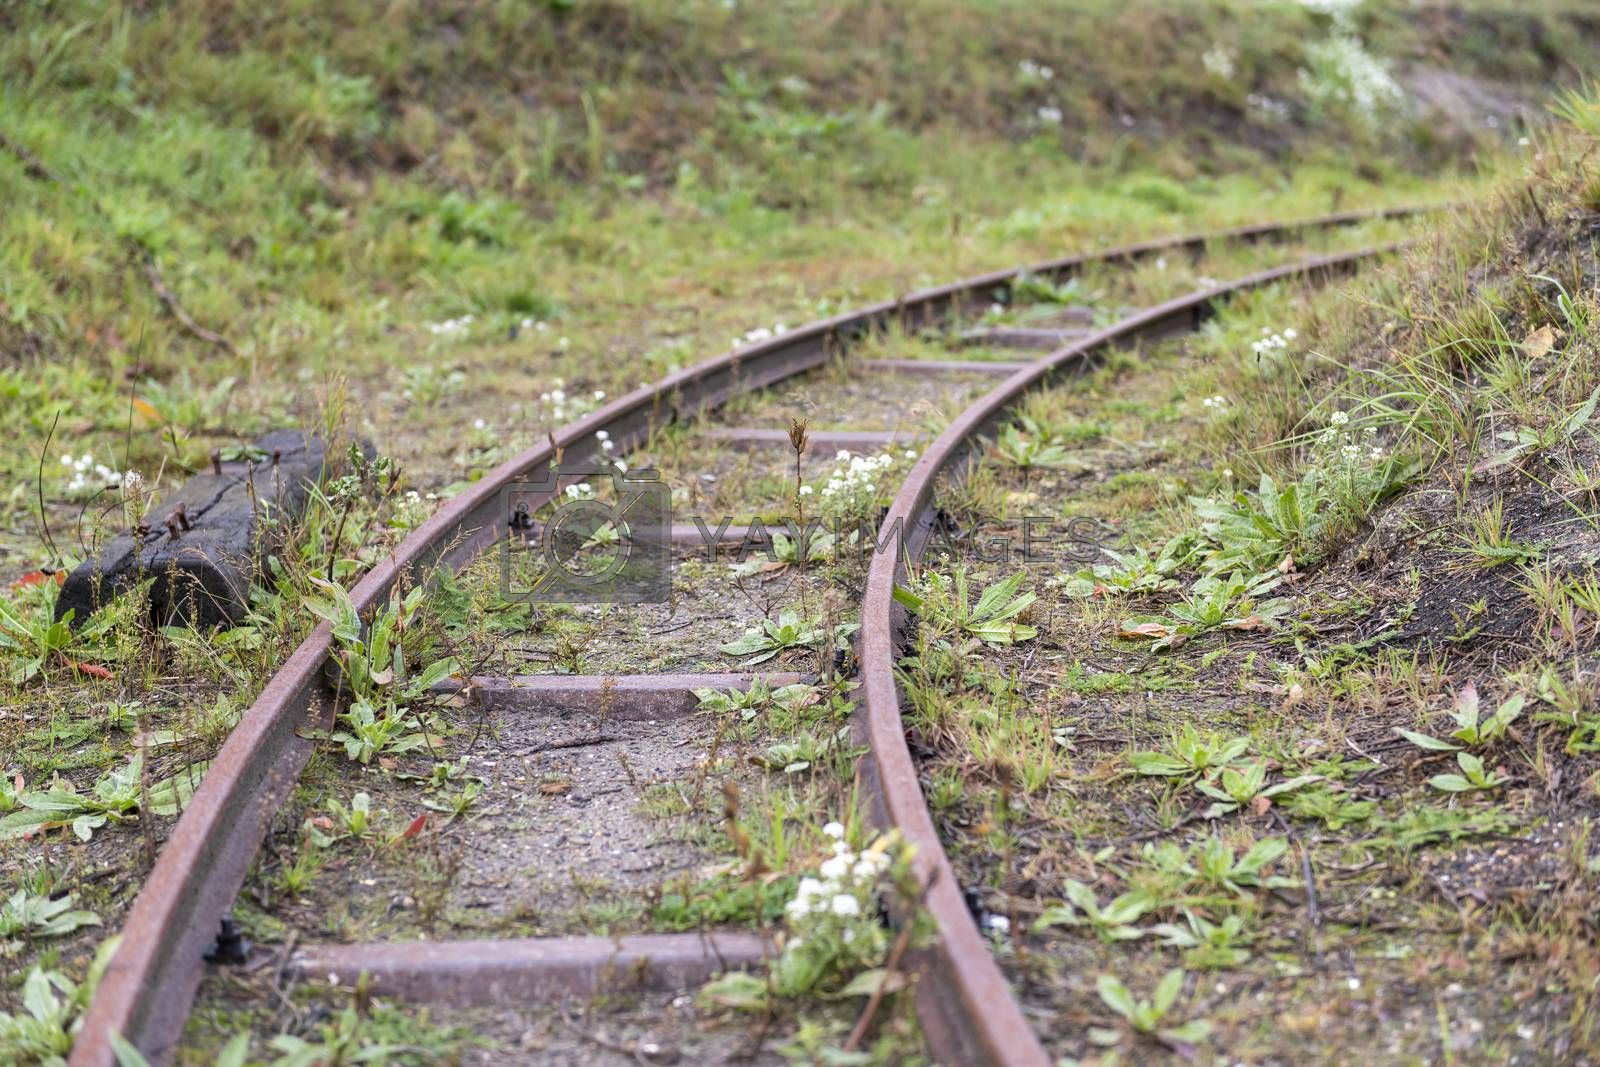 A disused historic narrow gauge railway with a right turn deflecting